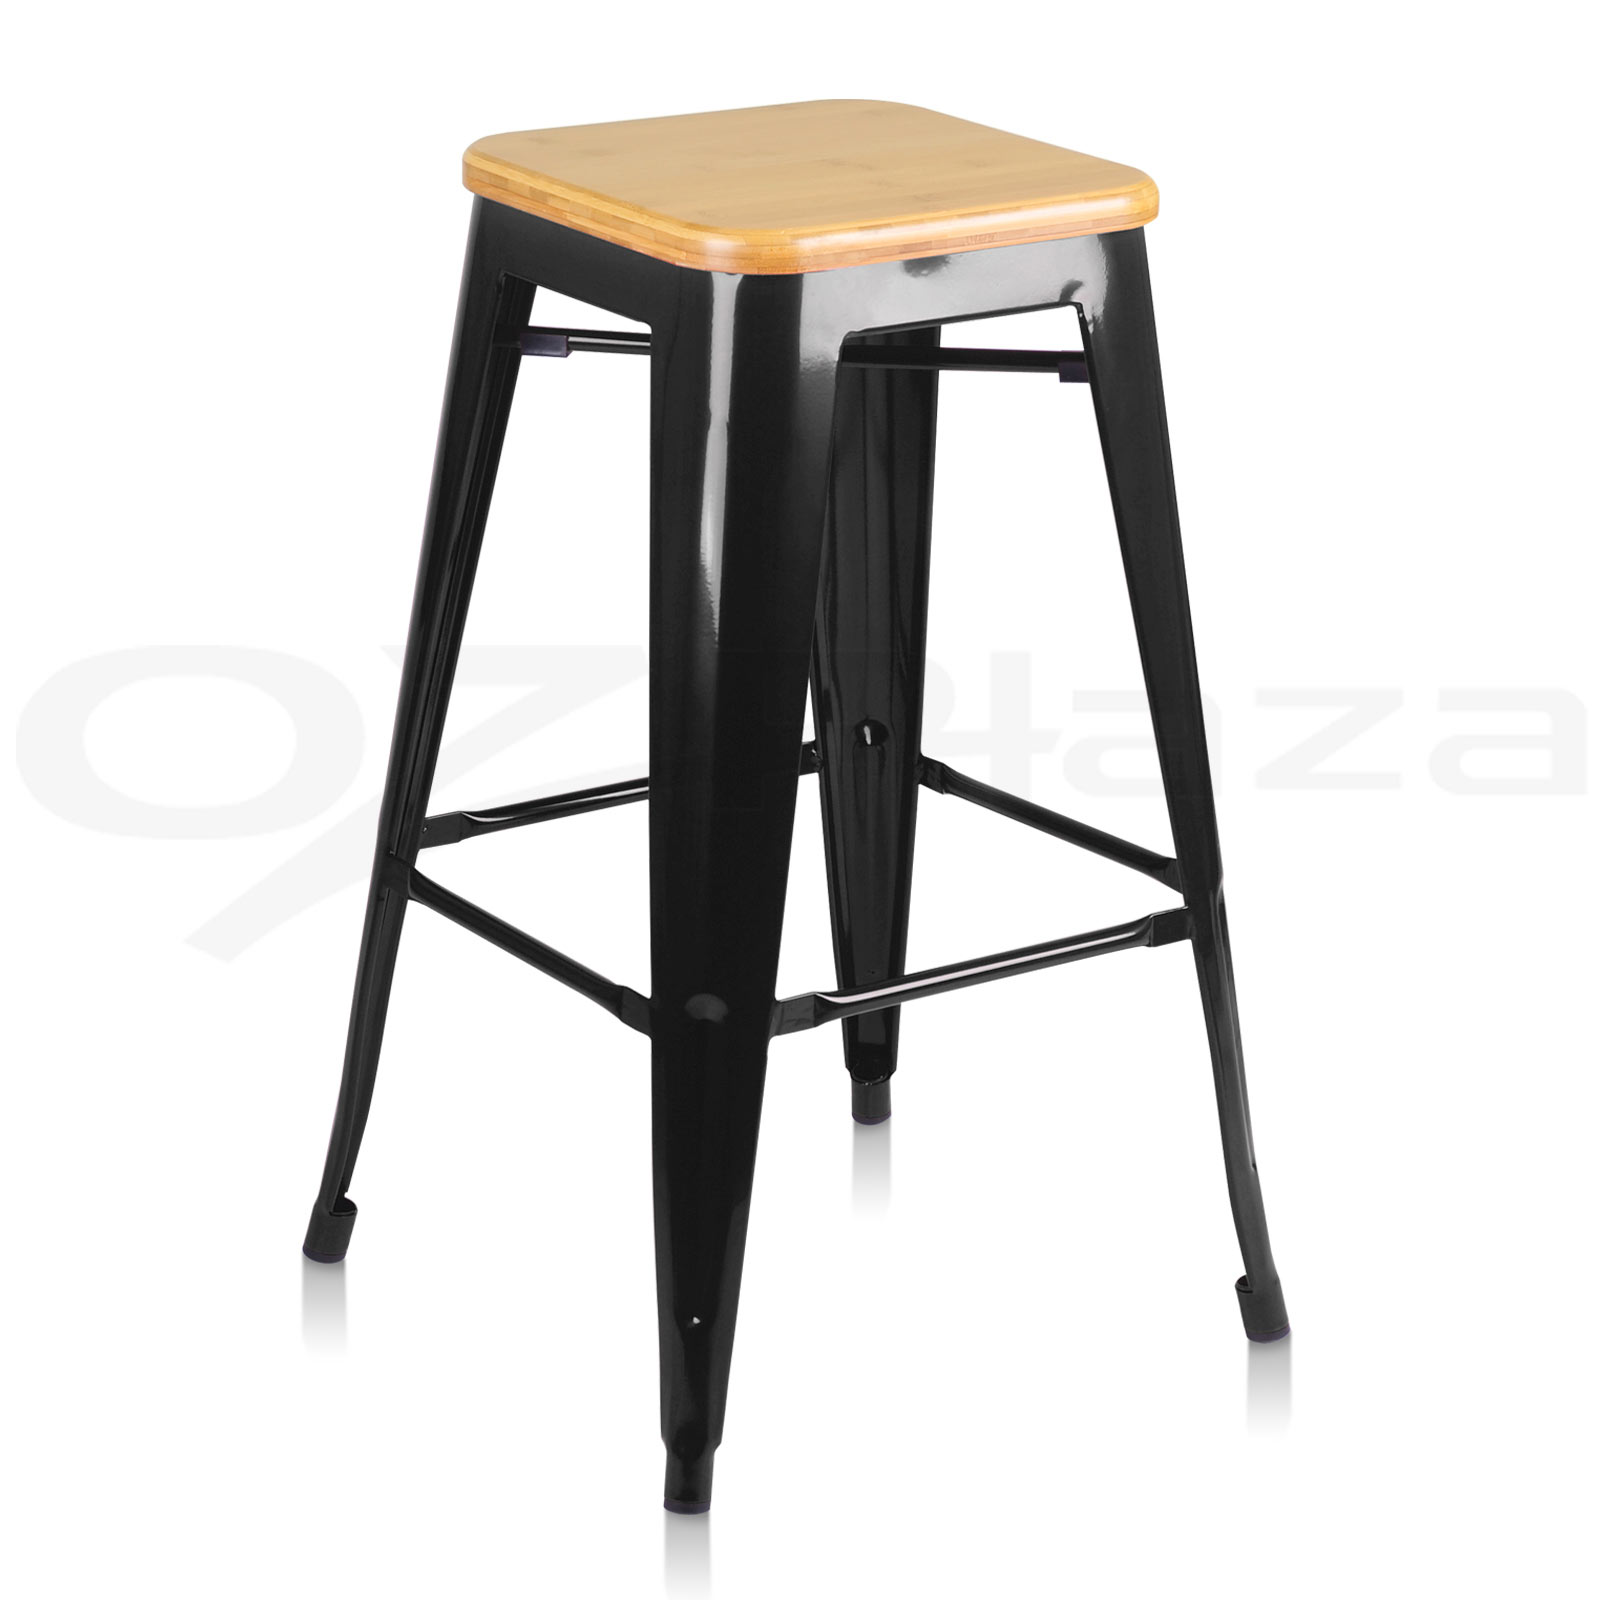 Tolix metal bar stools the hippest pics - Imitation tolix tabouret ...